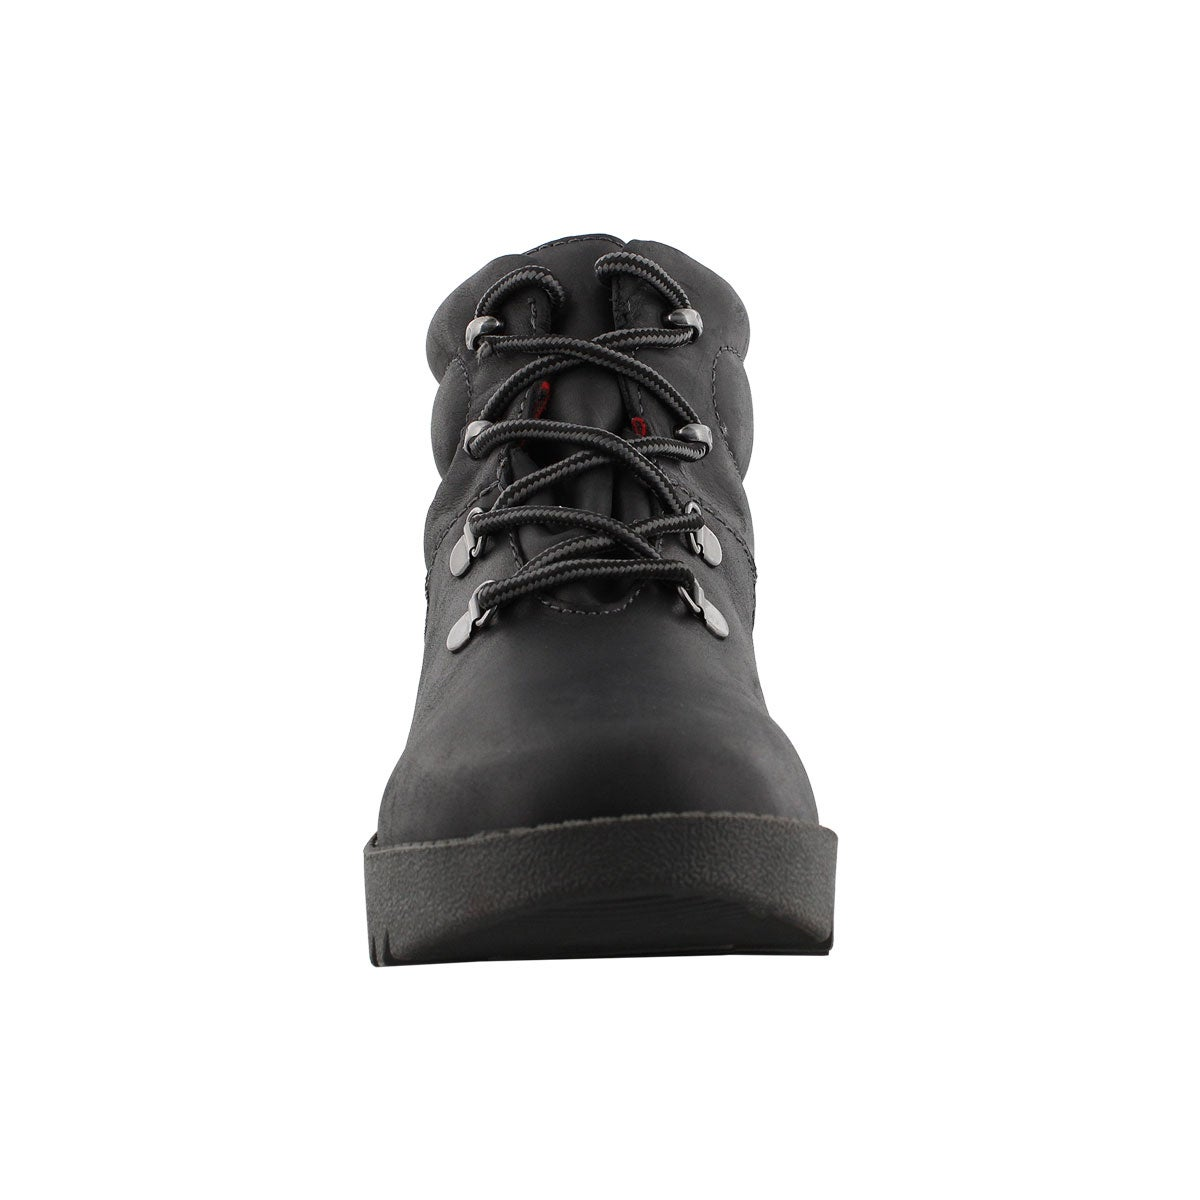 Lds Paige blk lace up wtrpf winter boot